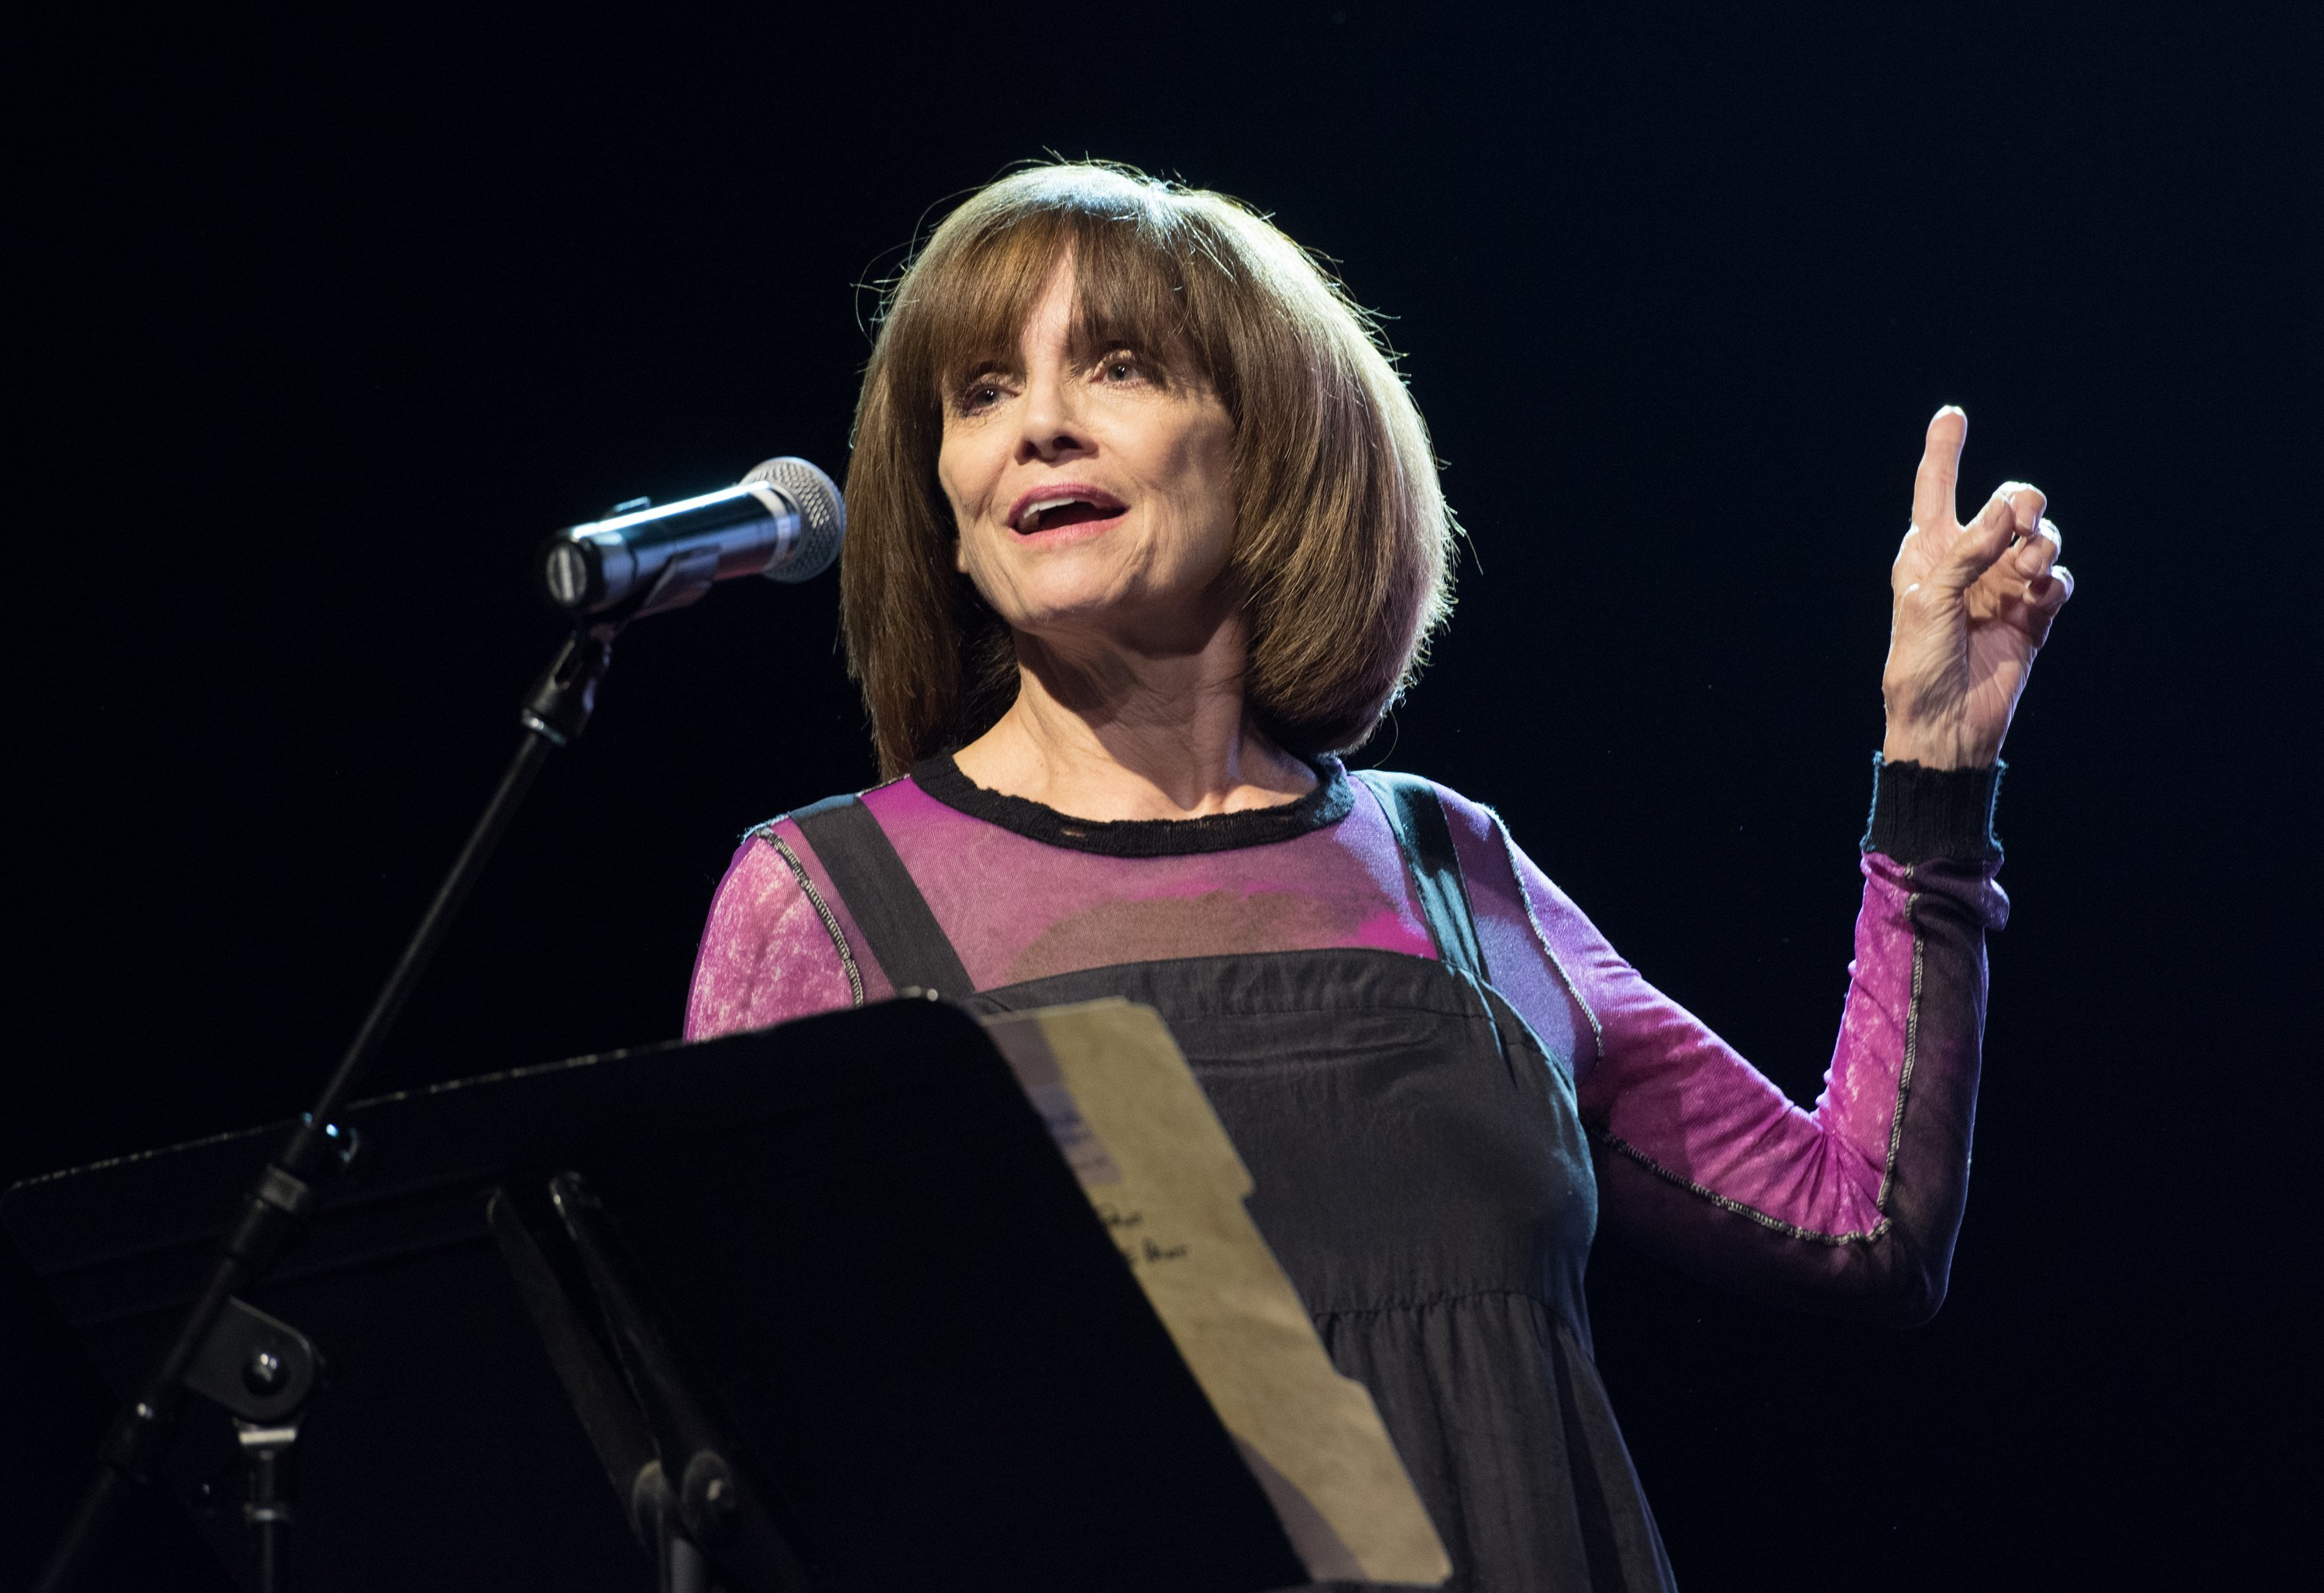 Valerie Harper's family launches GoFundMe for her cancer treatment